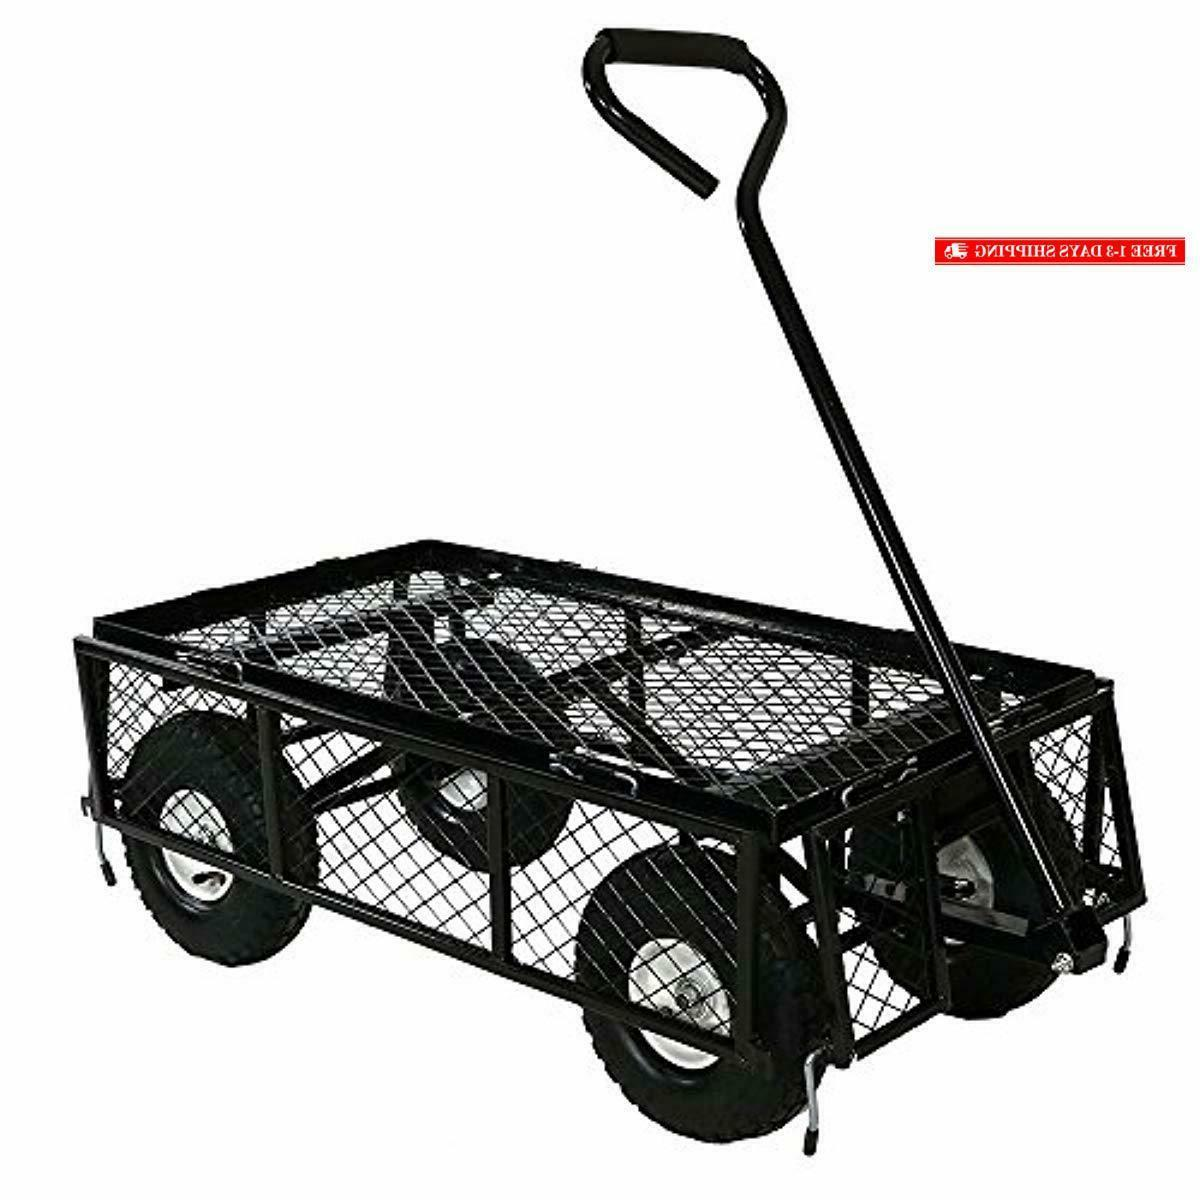 Sunnydaze Cart, Outdoor Lawn with Removable Sides,